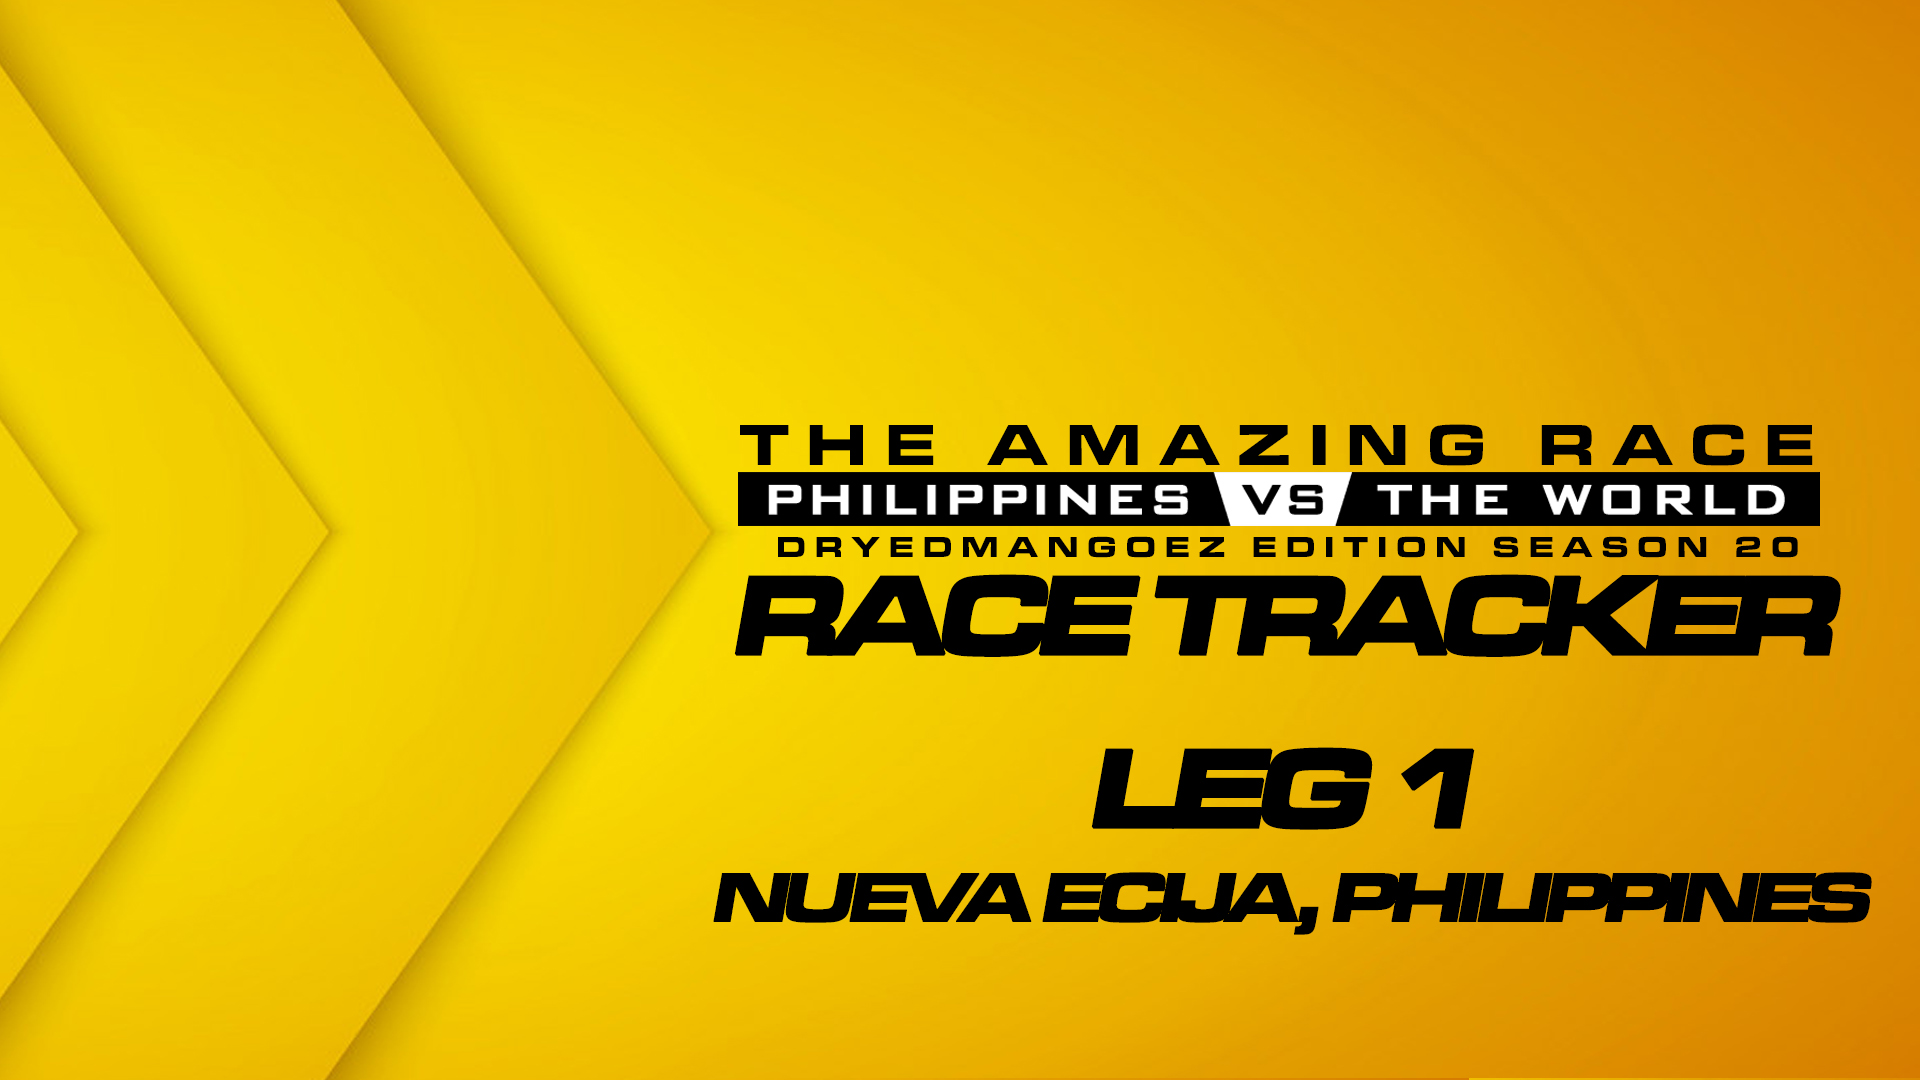 The Amazing Race Philippines vs The World Race Tracker – Leg 1